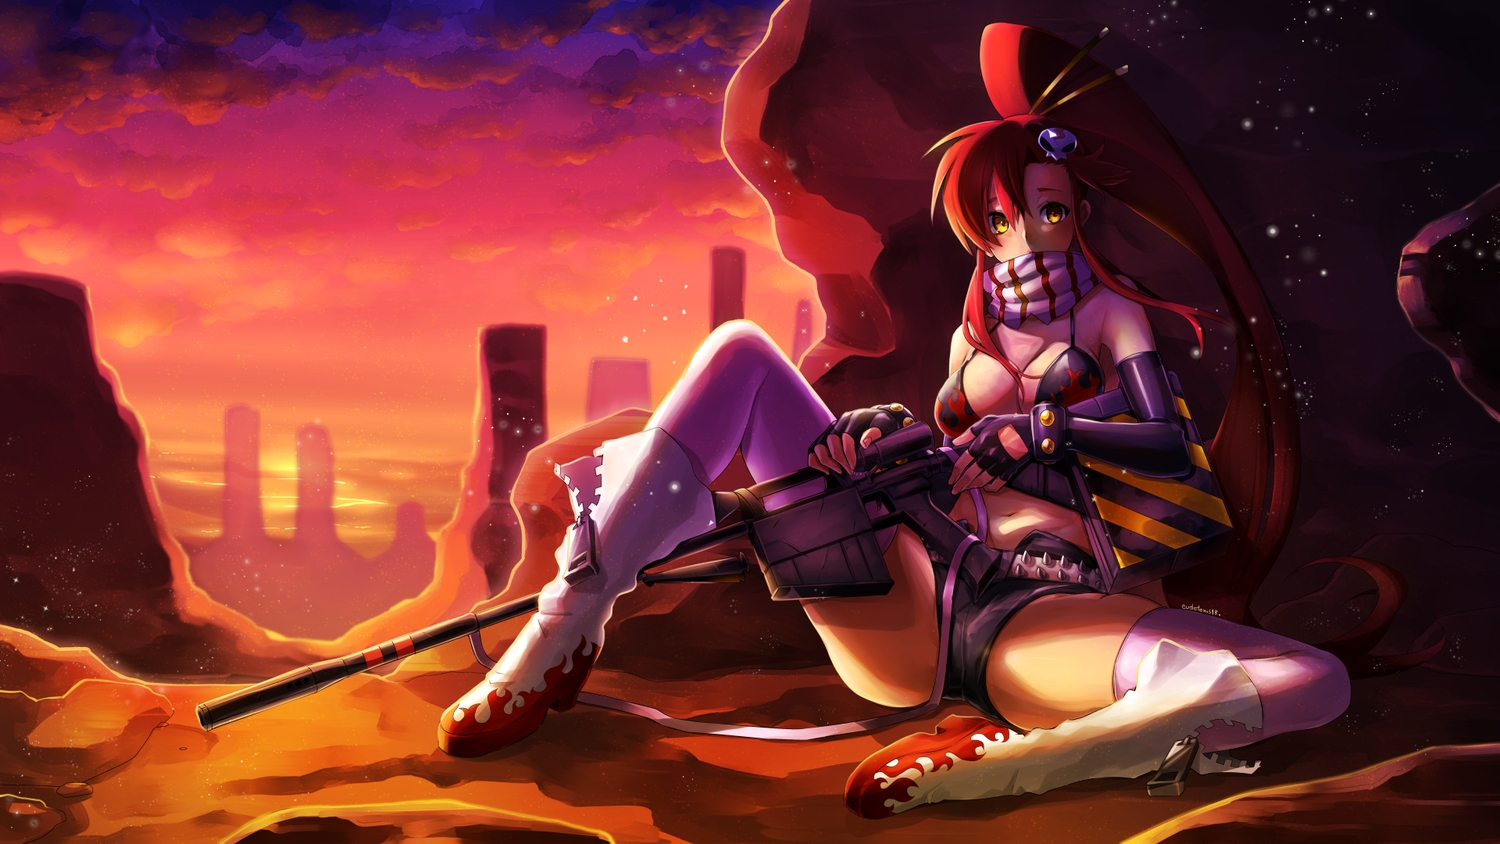 bikini_top breasts cleavage clouds eudetenis gun long_hair ponytail red_hair scarf shorts signed sky sunset tengen_toppa_gurren_lagann thighhighs weapon yellow_eyes yoko_littner